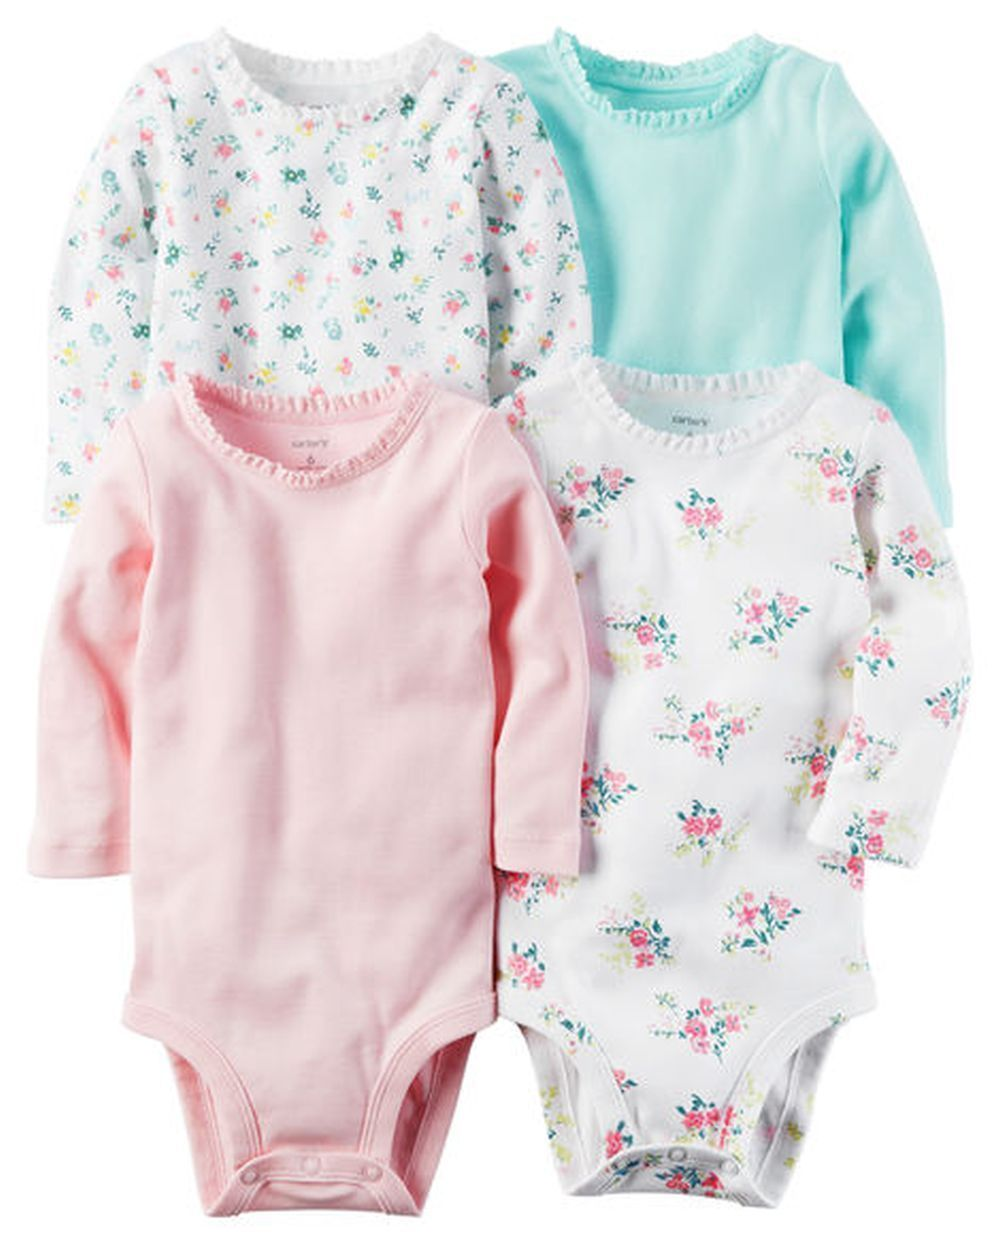 Carter/'s 4 Pack Long Sleeve Floral Bodysuits Set Girls 12 months NEW NWT